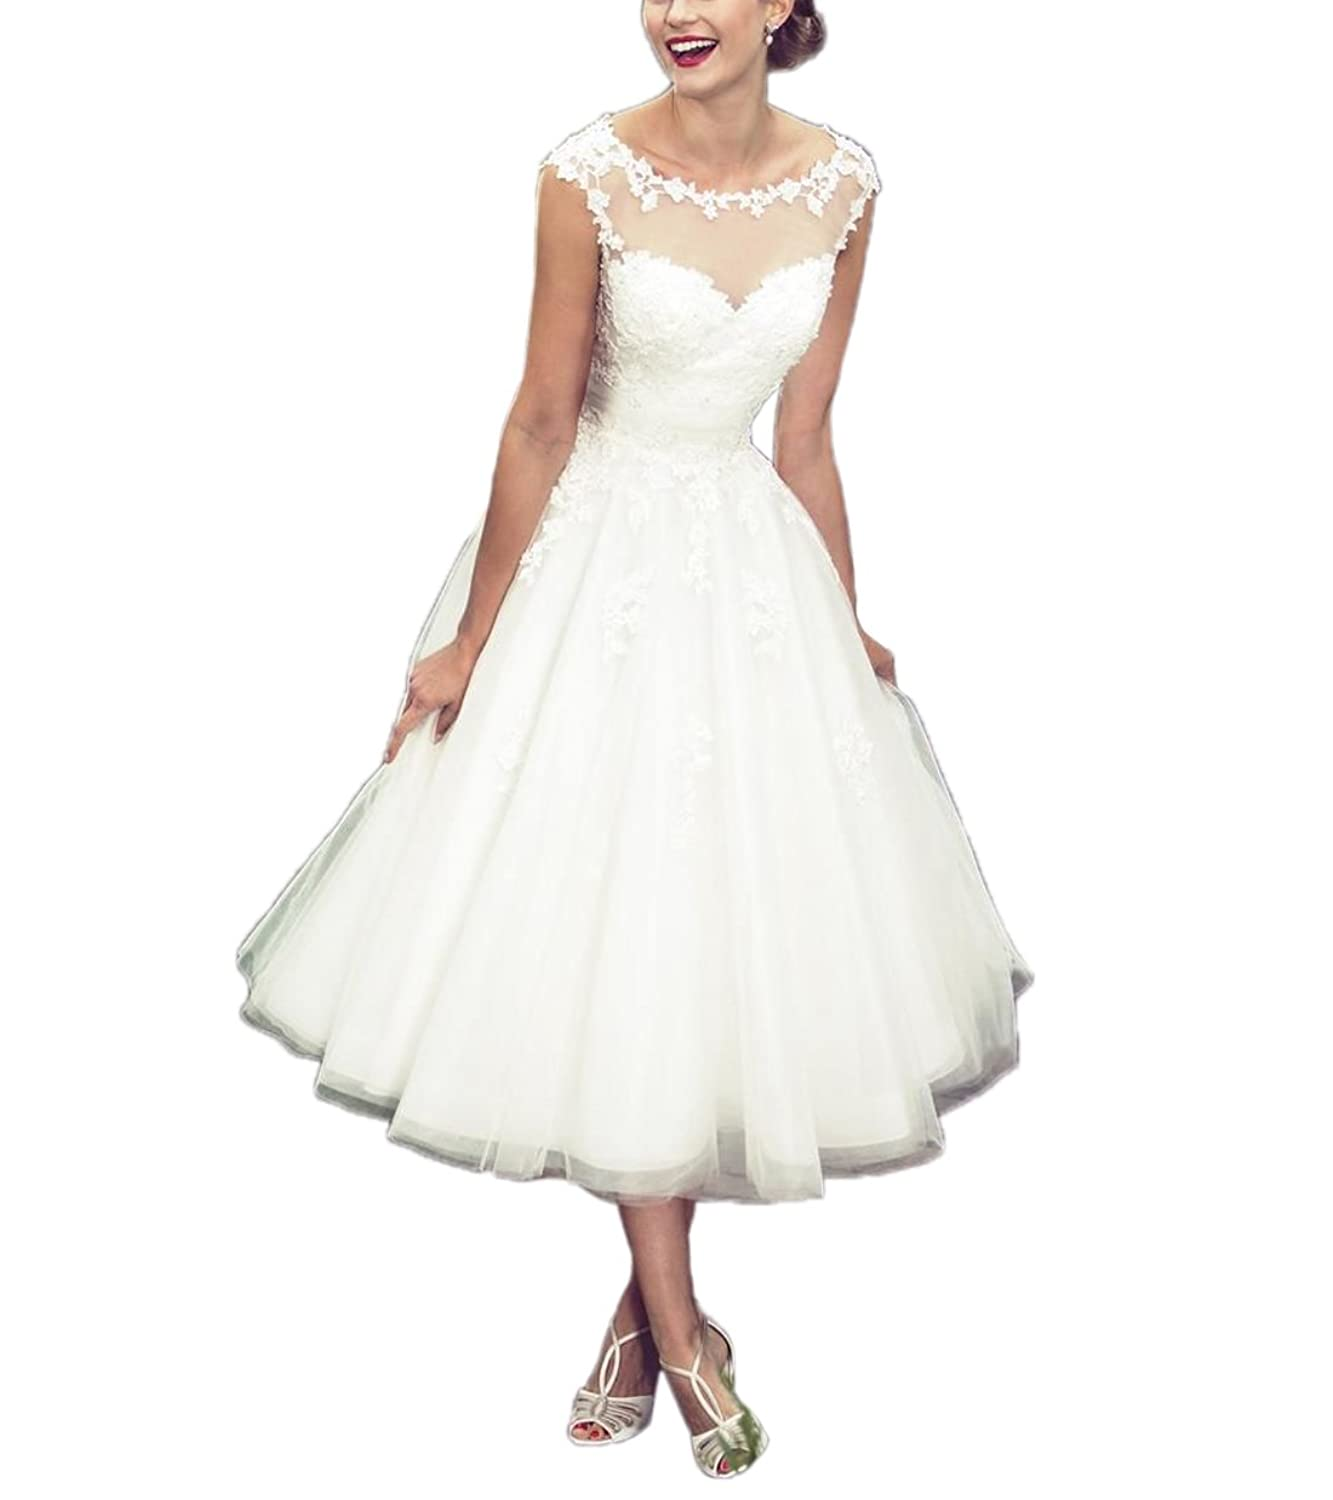 Vintage Style Wedding Dresses, Vintage Inspired Wedding Gowns Womens Elegant Sheer Vintage Short Lace Wedding Dress For Bride $105.00 AT vintagedancer.com